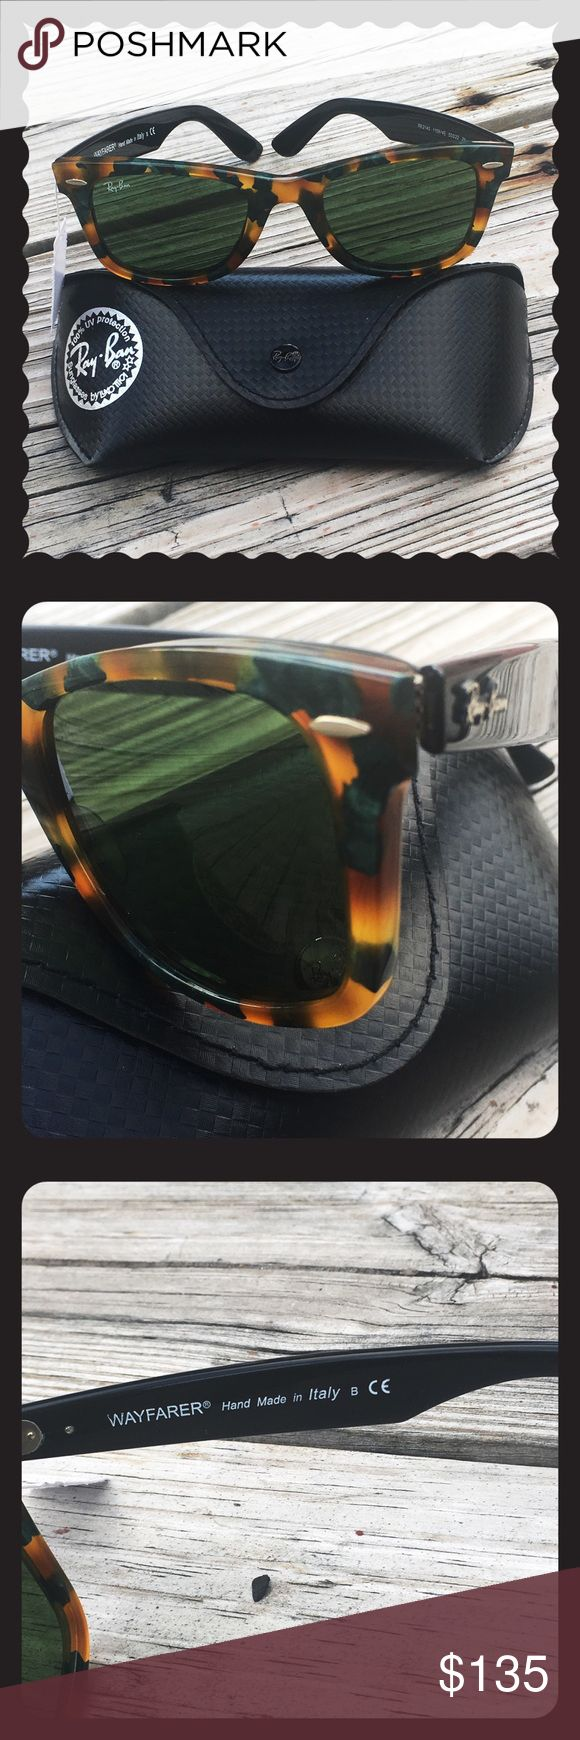 NWT Ray Ban Wayfarer Fleck Sunglasses + black case Brand new with tags and black Ray-Ban glasses case.  Perfect condition.  Square style plastic frame with green polarized lens. UV protection.  Lens 52 mm x bridge 18 mm x arms 145 mm (approx). NEXT DAY SHIPPING No trades Ray-Ban Accessories Sunglasses